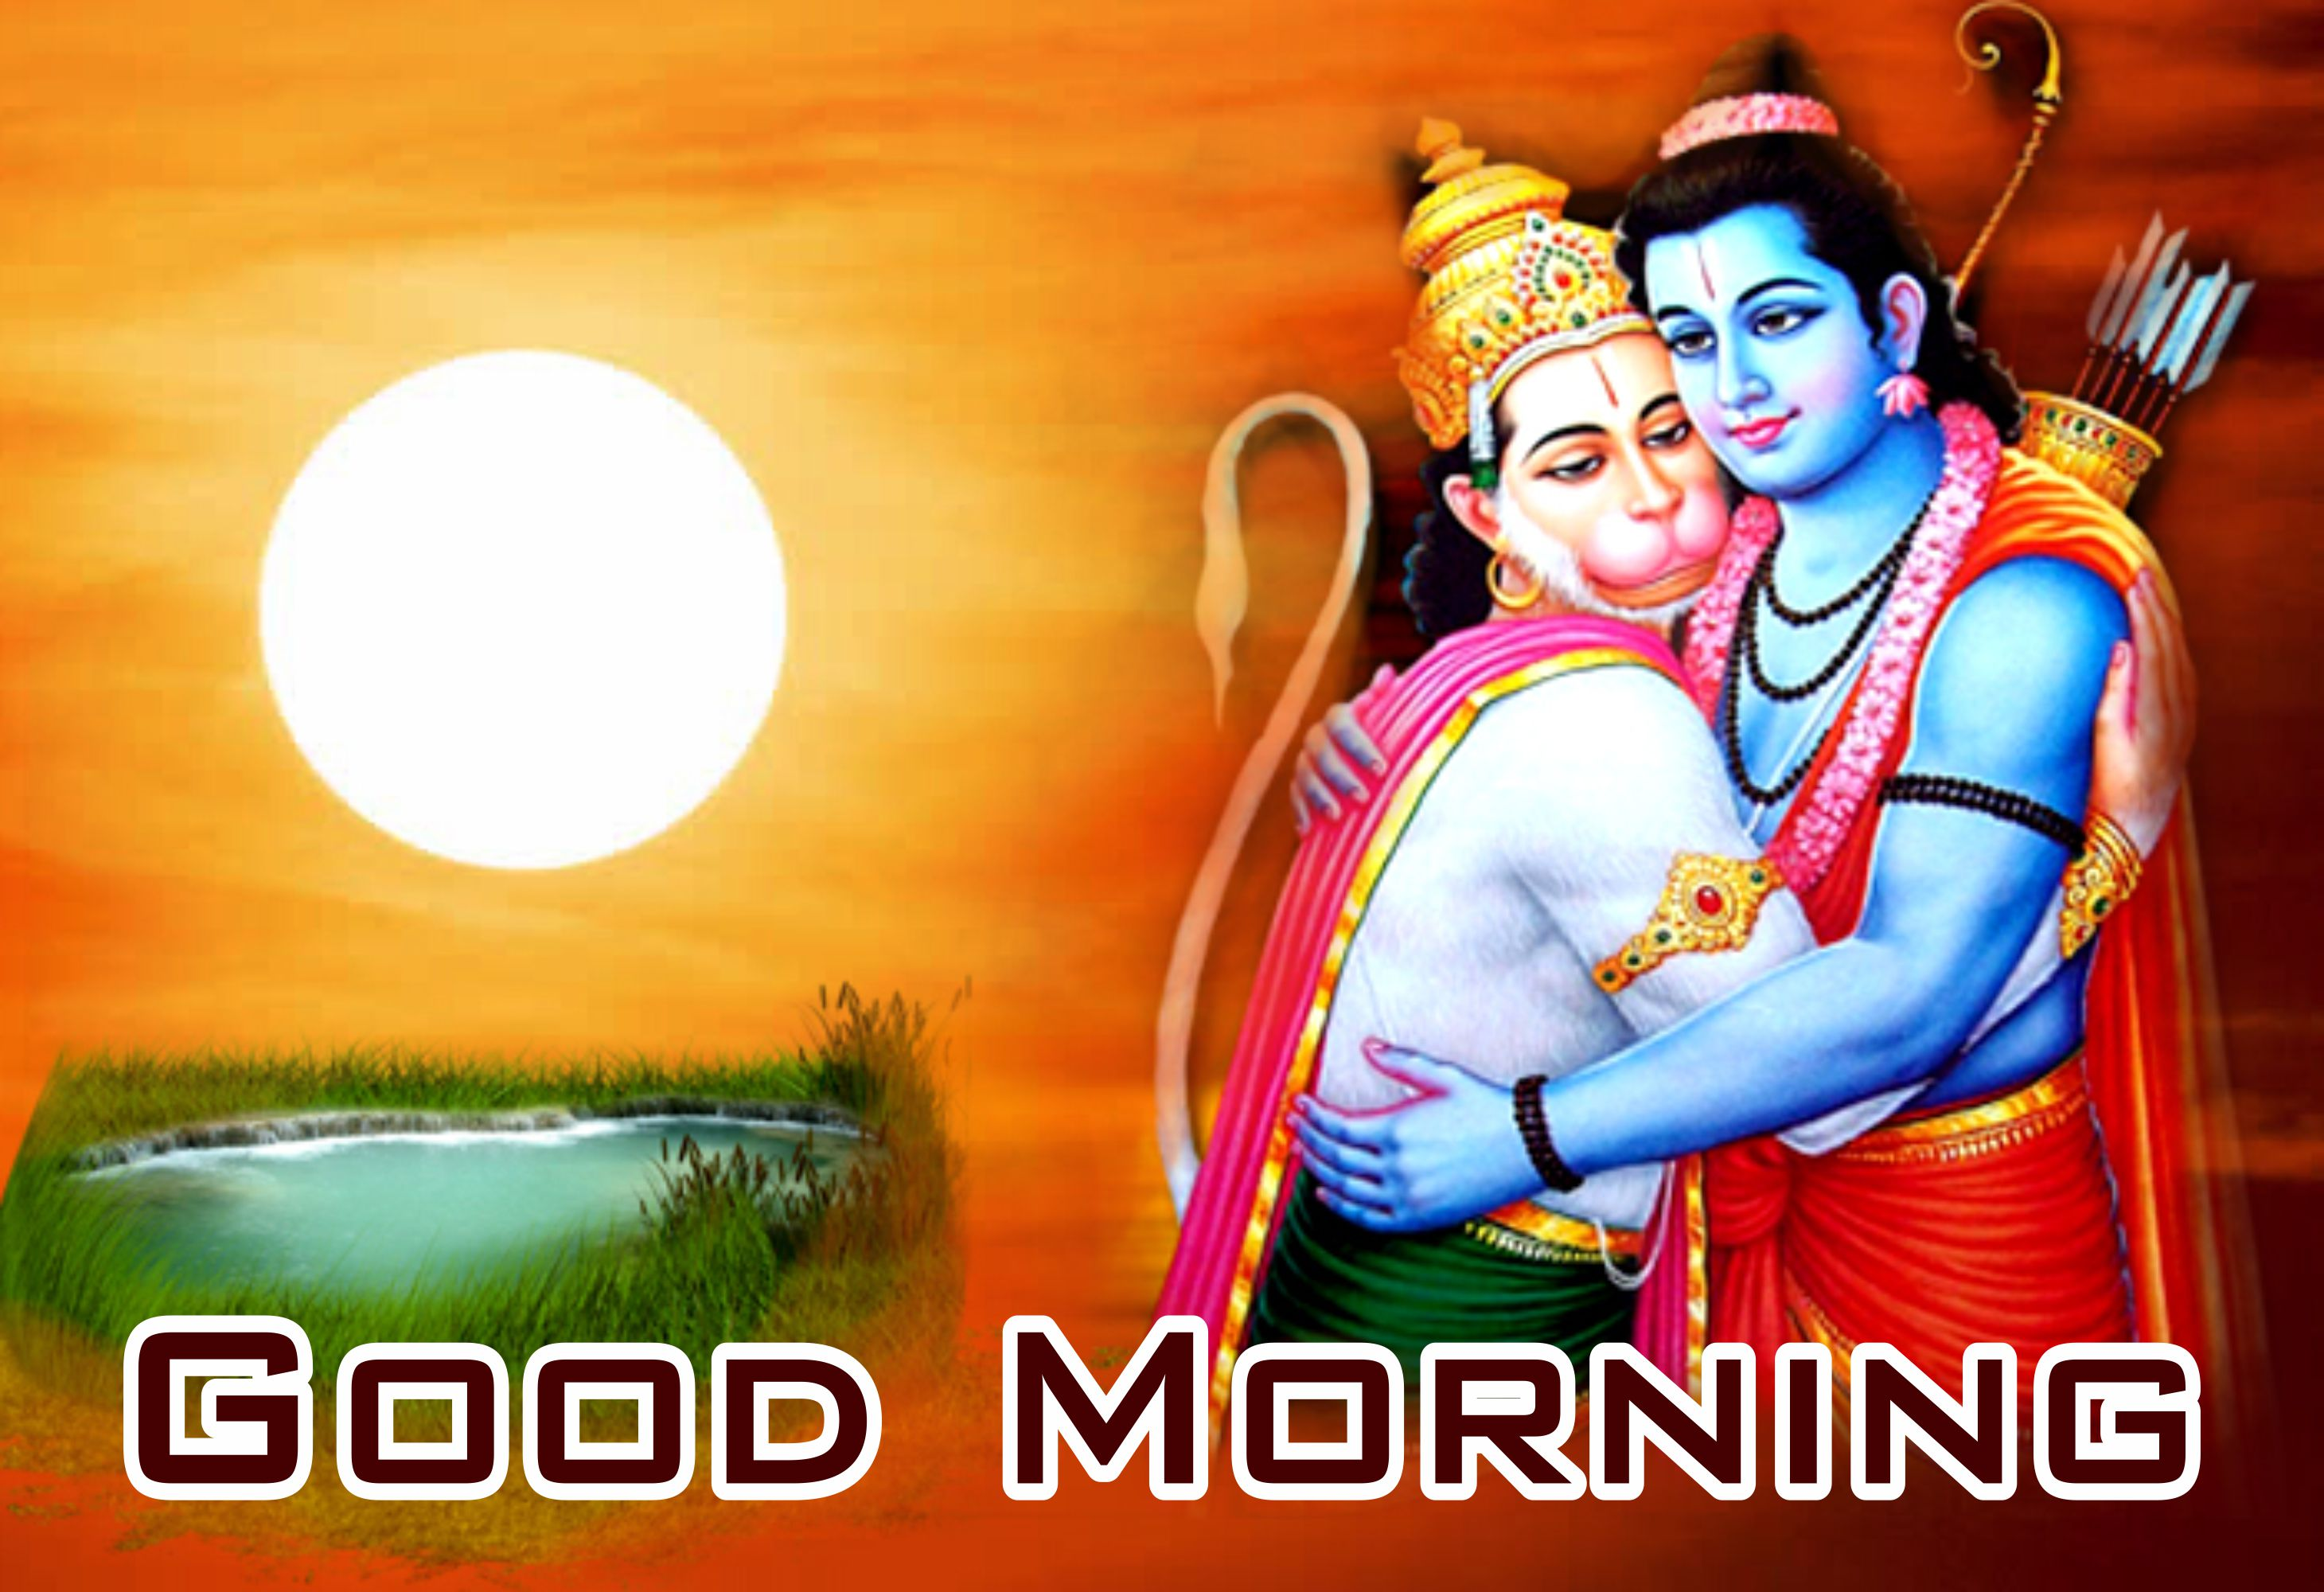 bhagwan shri ram morning wishes download images